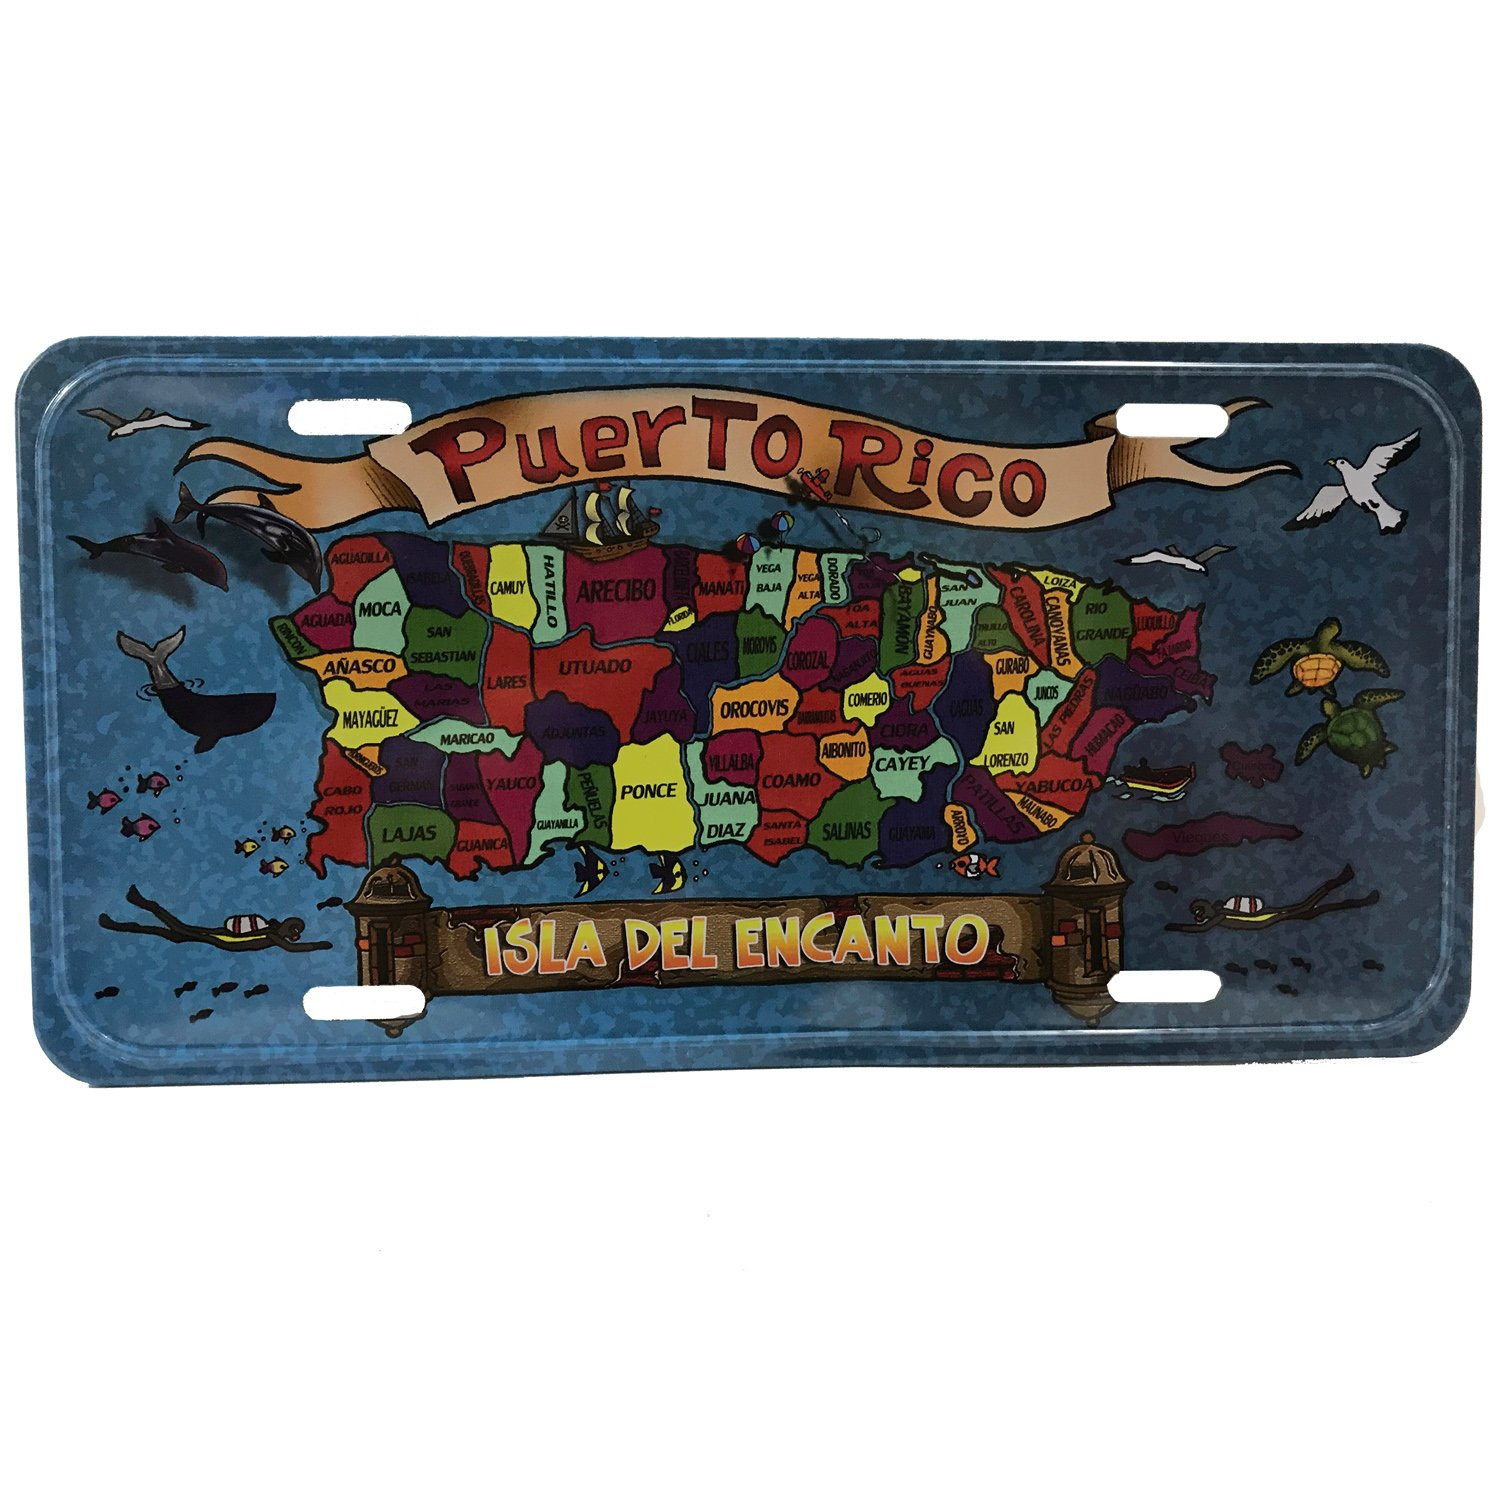 ARECIBO PUERTO RICO STATE FLAG BACKGROUND NOVELTY METAL LICENSE PLATE TAG